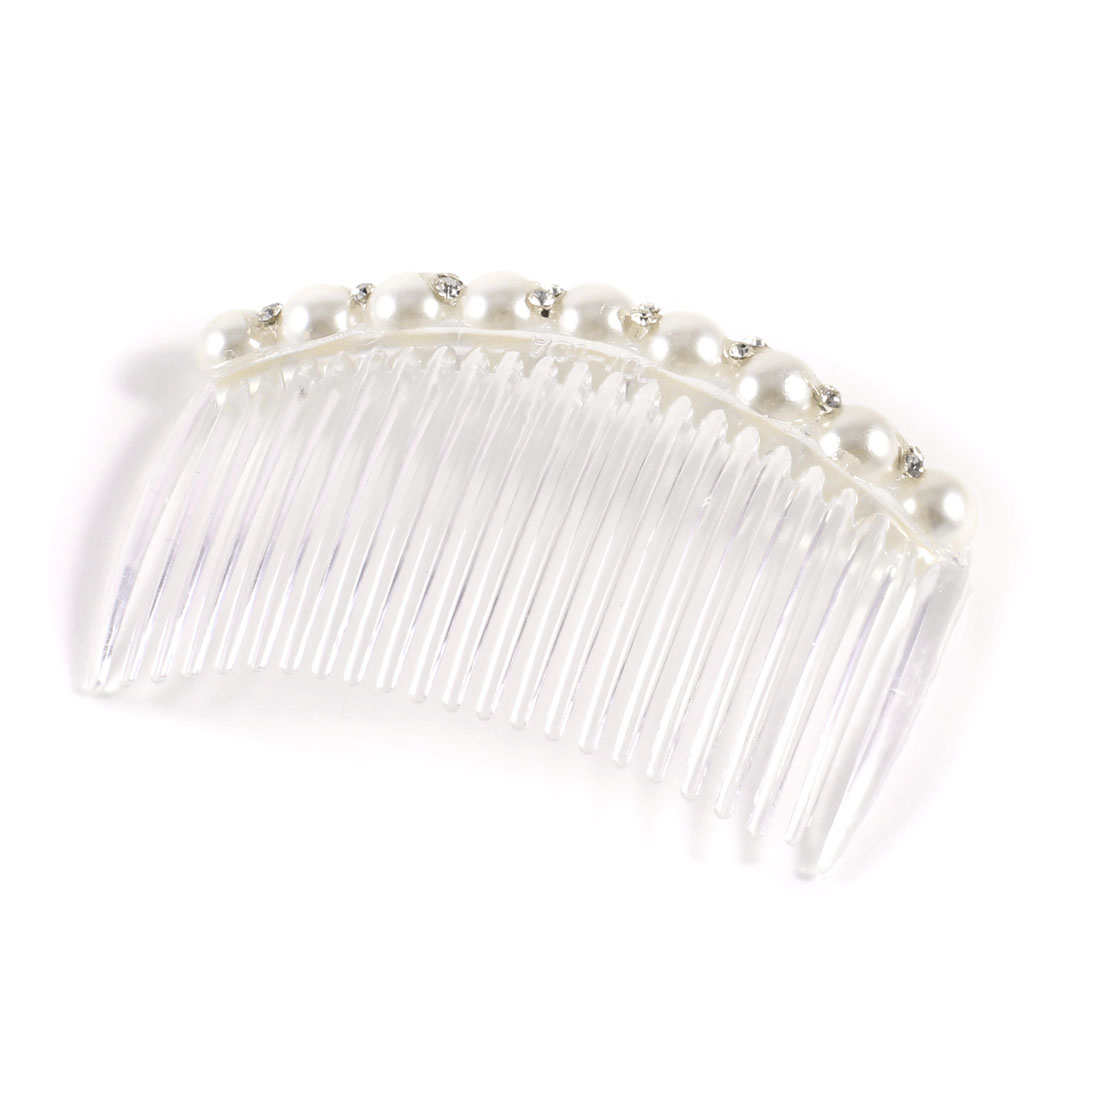 Ladies 23-Teeth Plastic Beaded Rhinestone Decoration Hair Clip Comb White